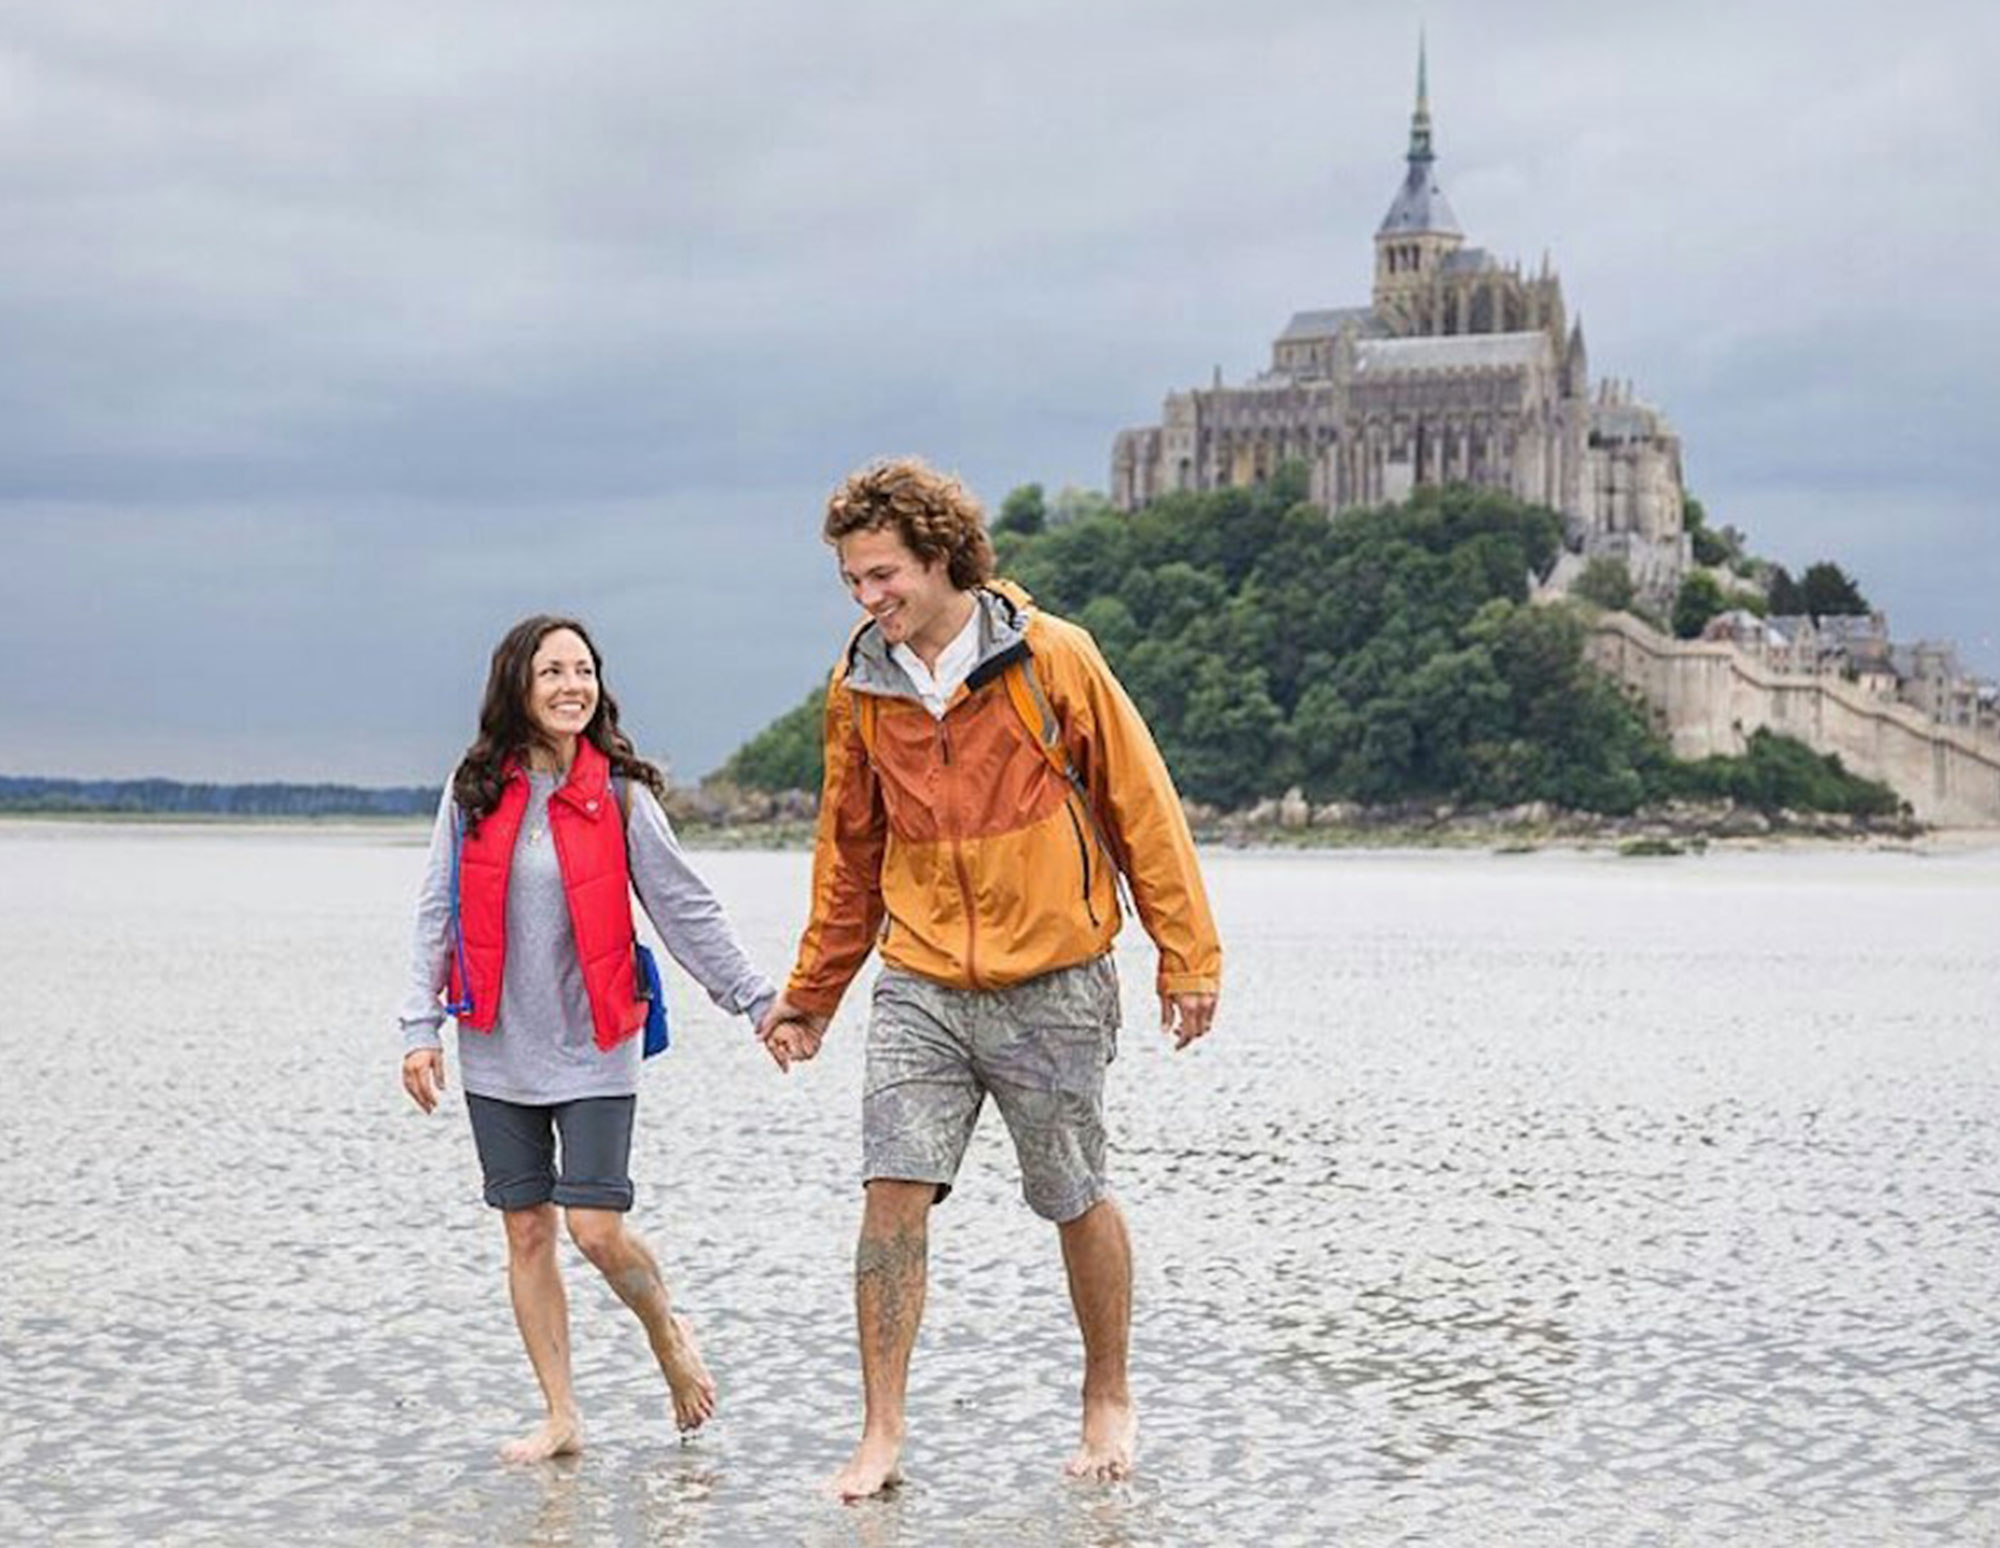 We loved the sensation of these tidal flats underfoot near Mont St. Michel in France during the European leg of our adventure.